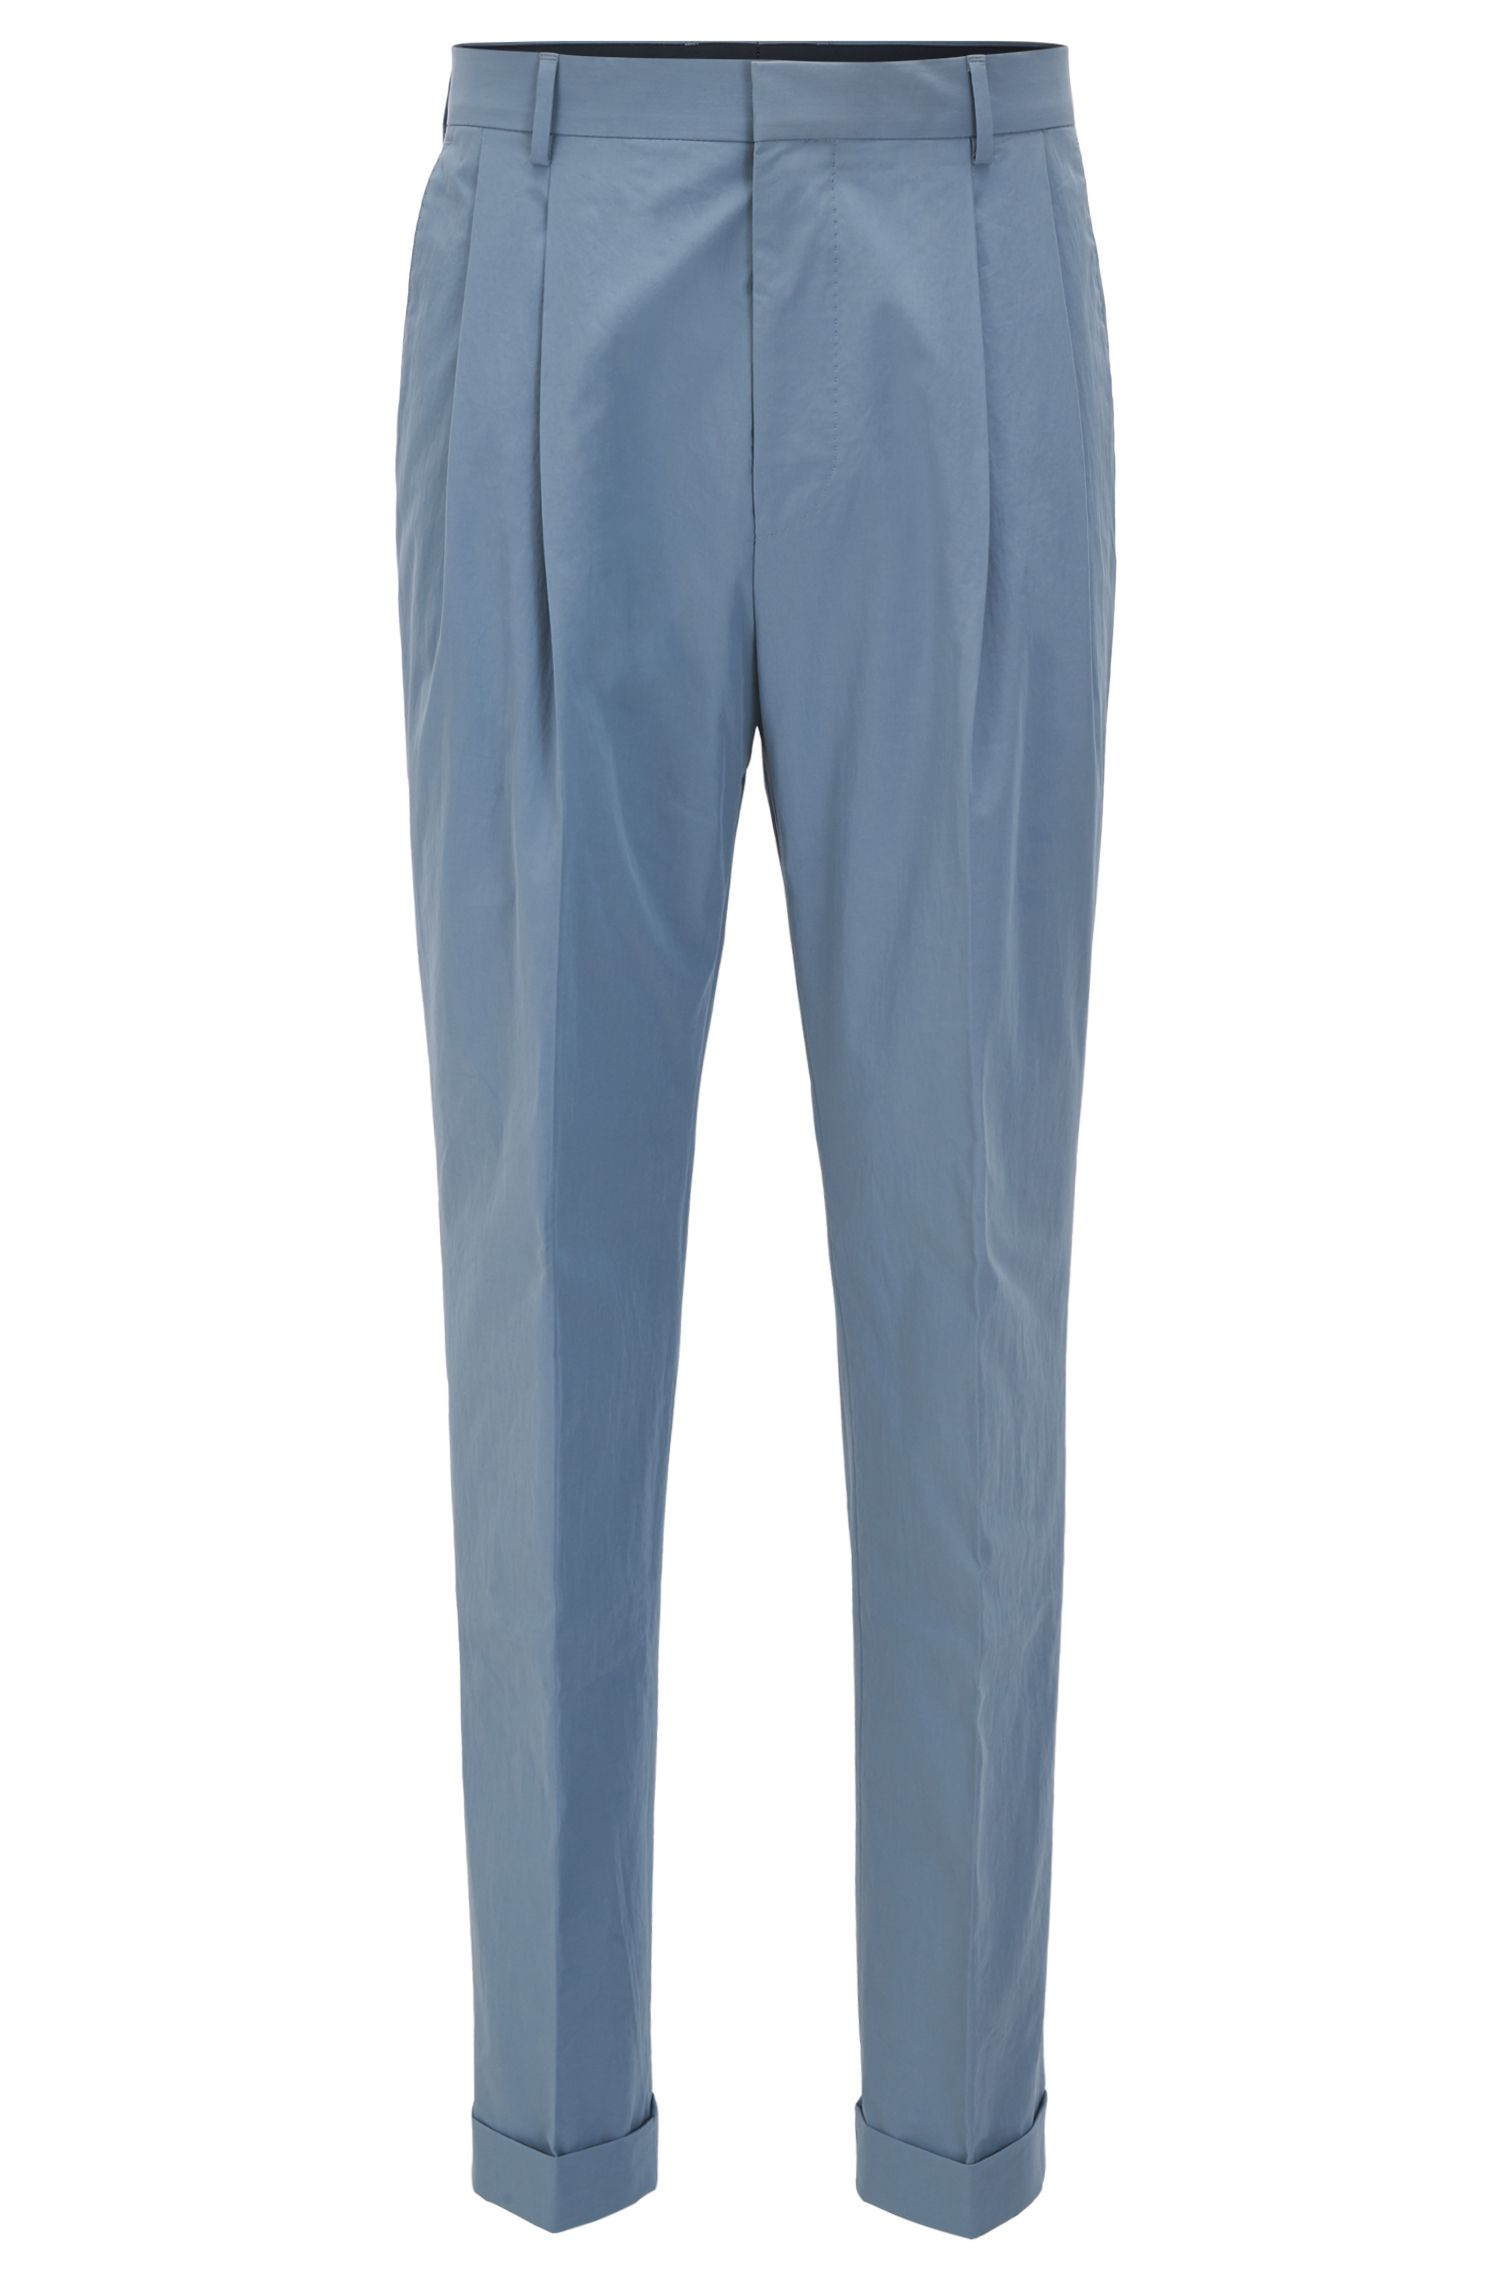 Relaxed-fit trousers in paper-touch cotton